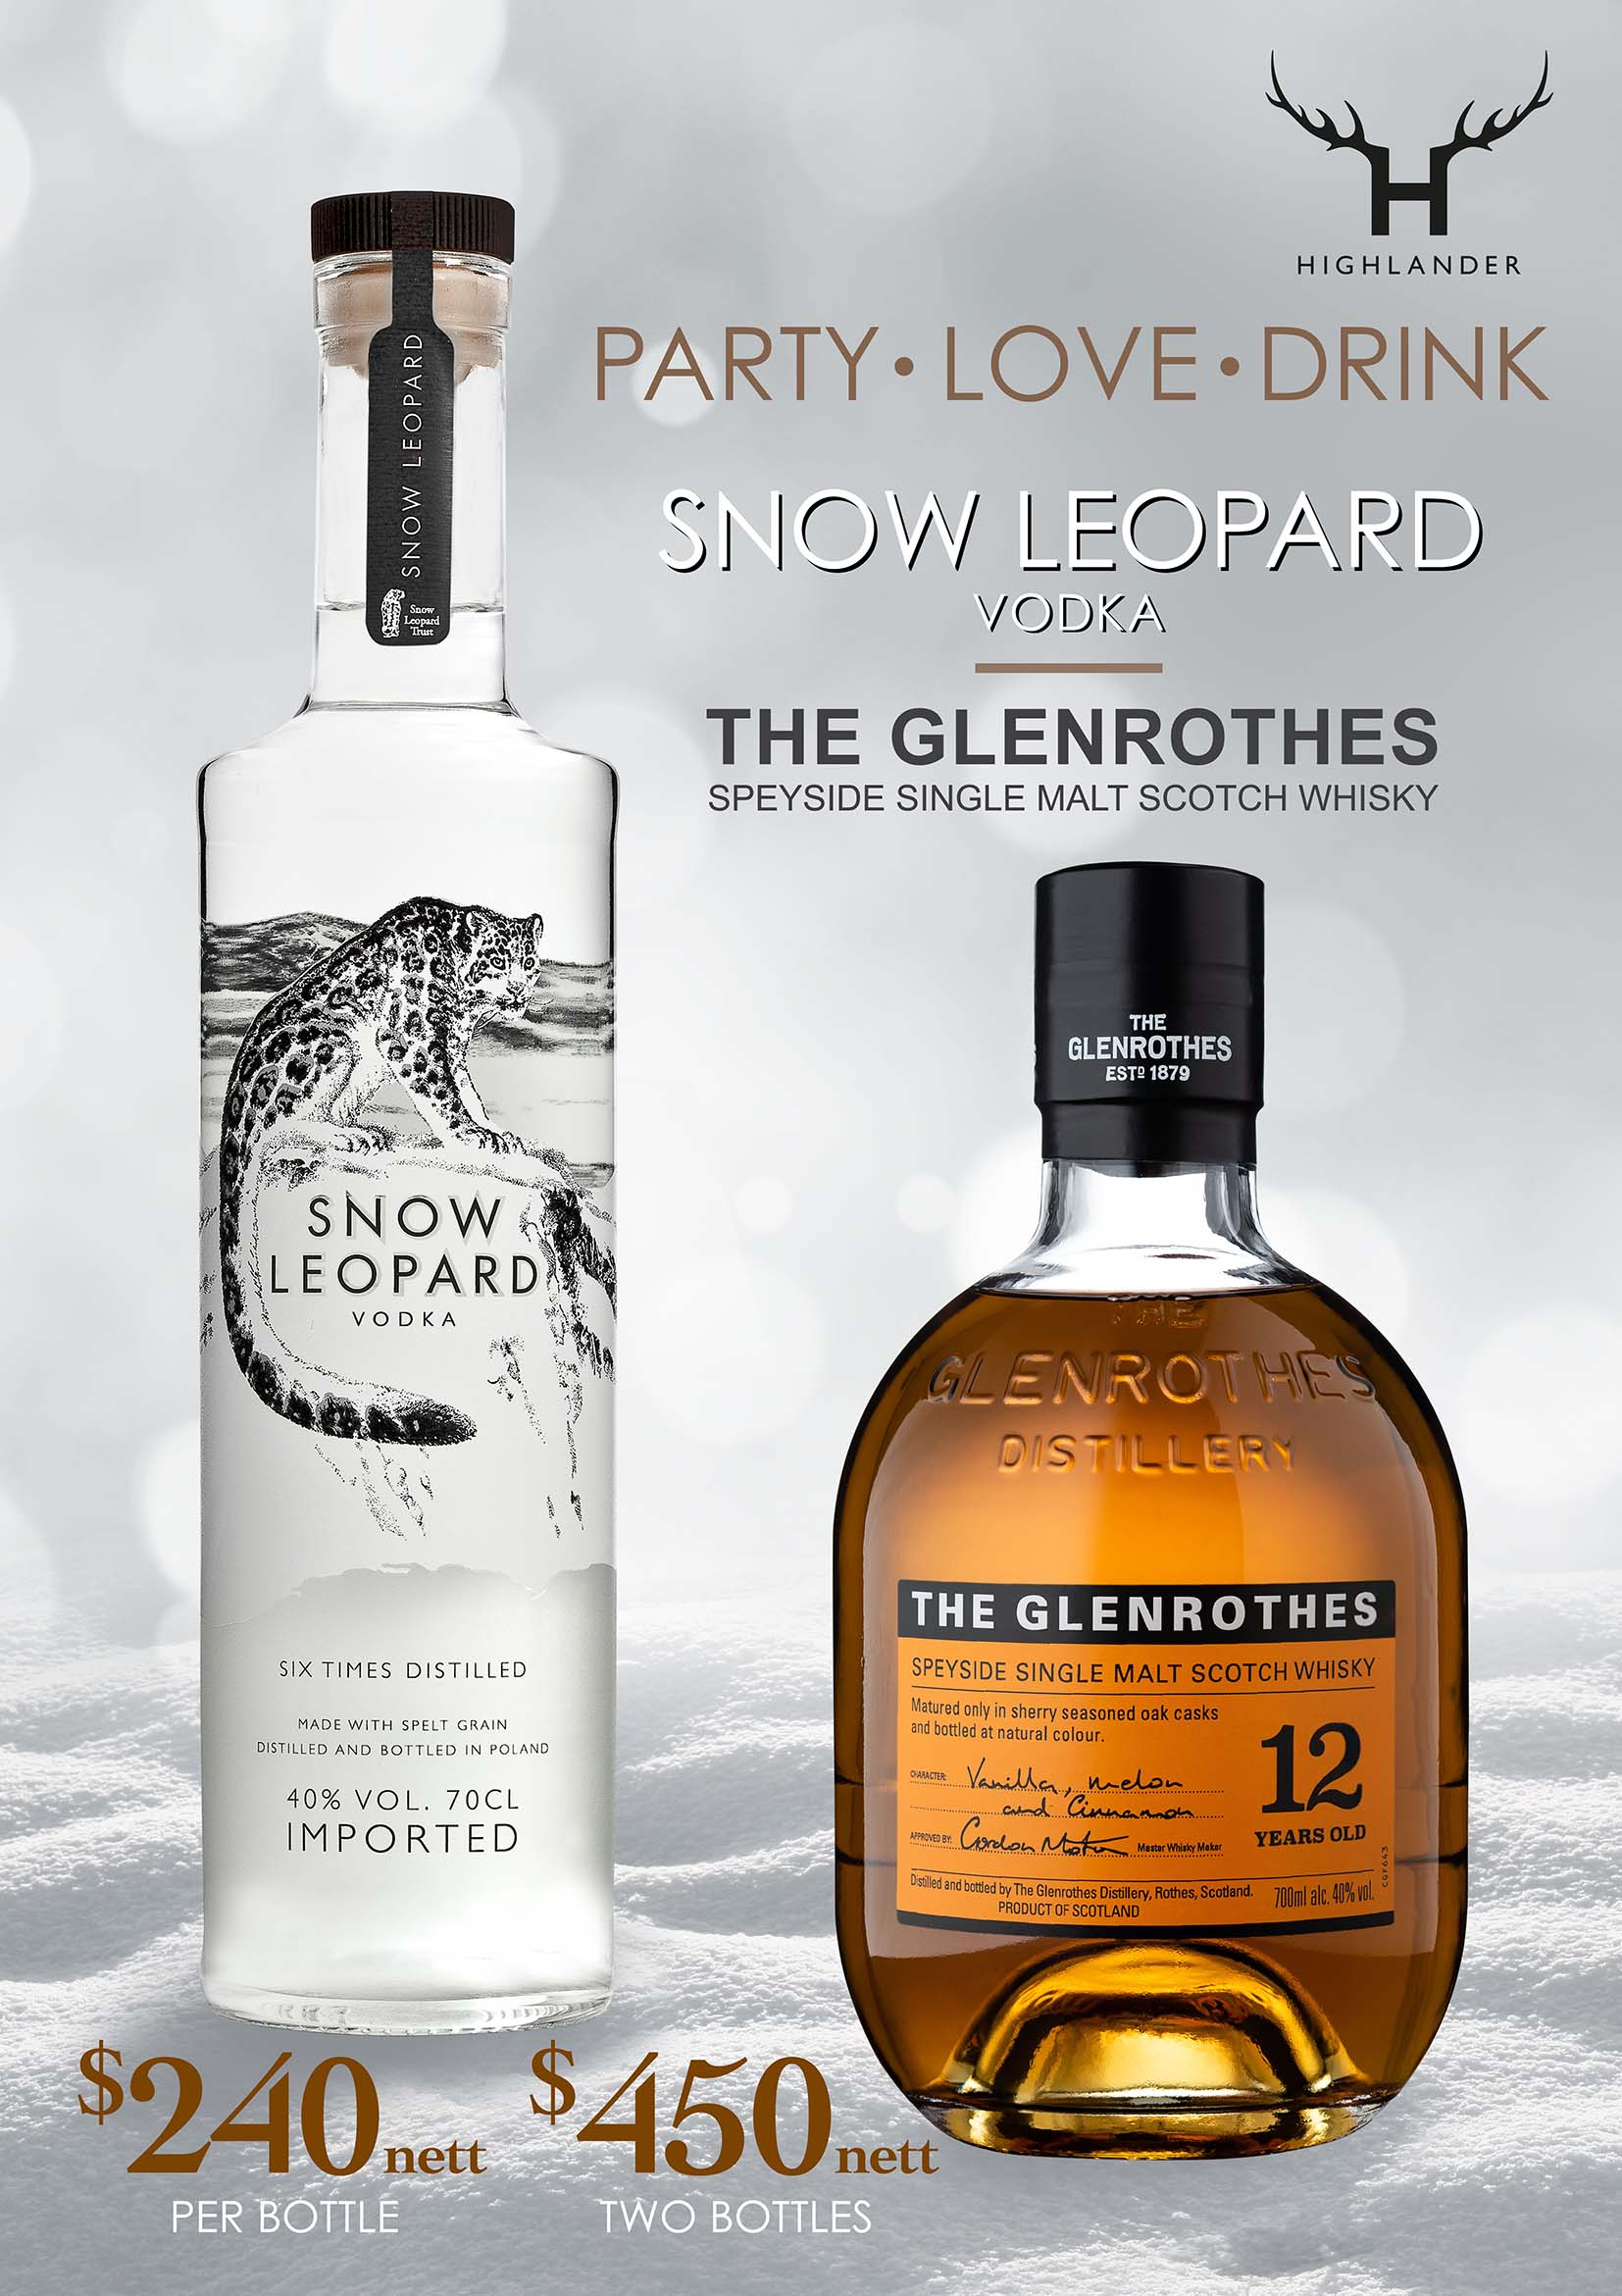 Snow Leopard-Glenrothes